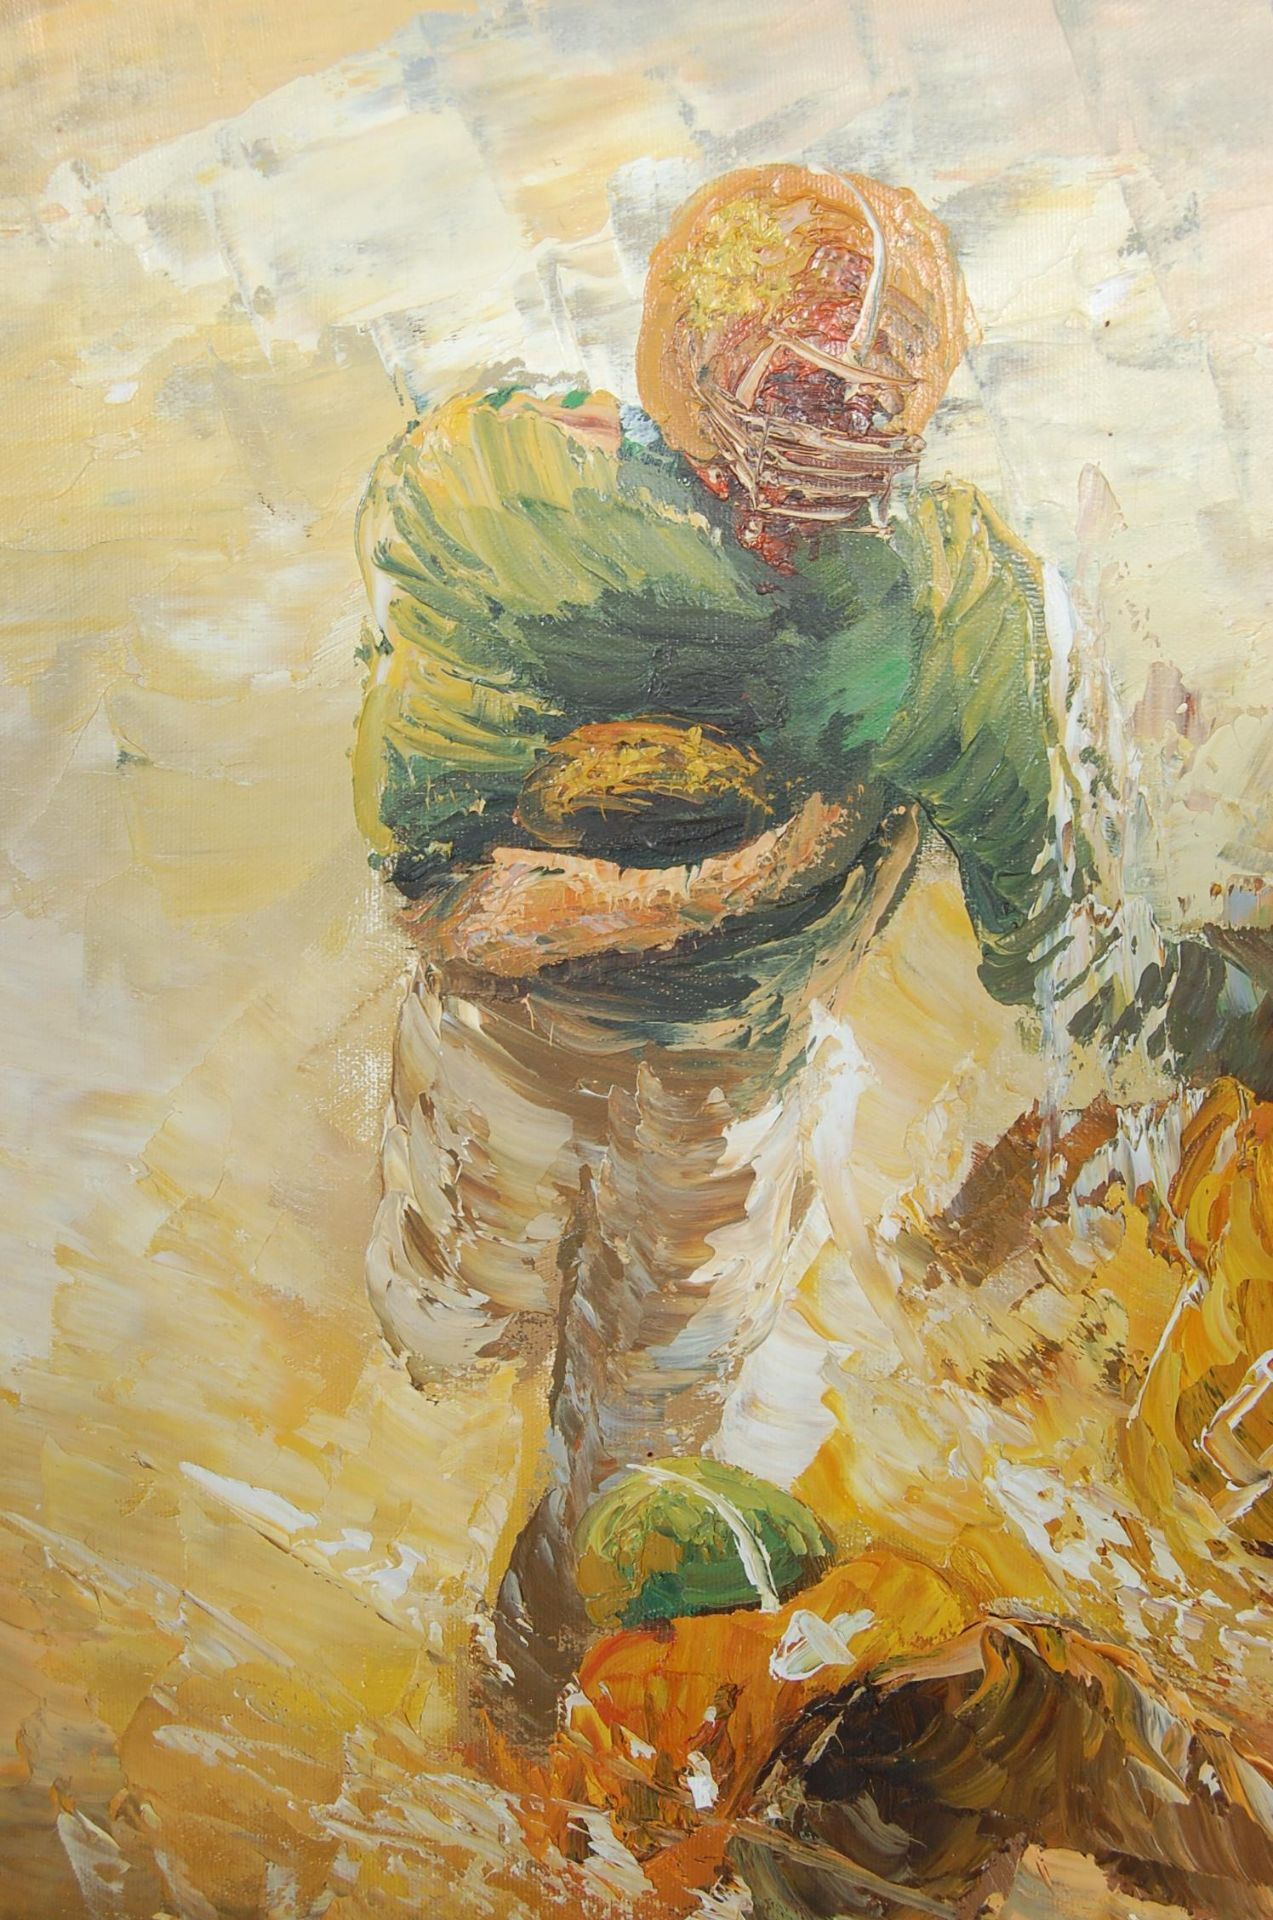 AMERICAN FOOTBALL OIL ON CANVAS PALETTE KNIFE PAINTING - Image 3 of 6